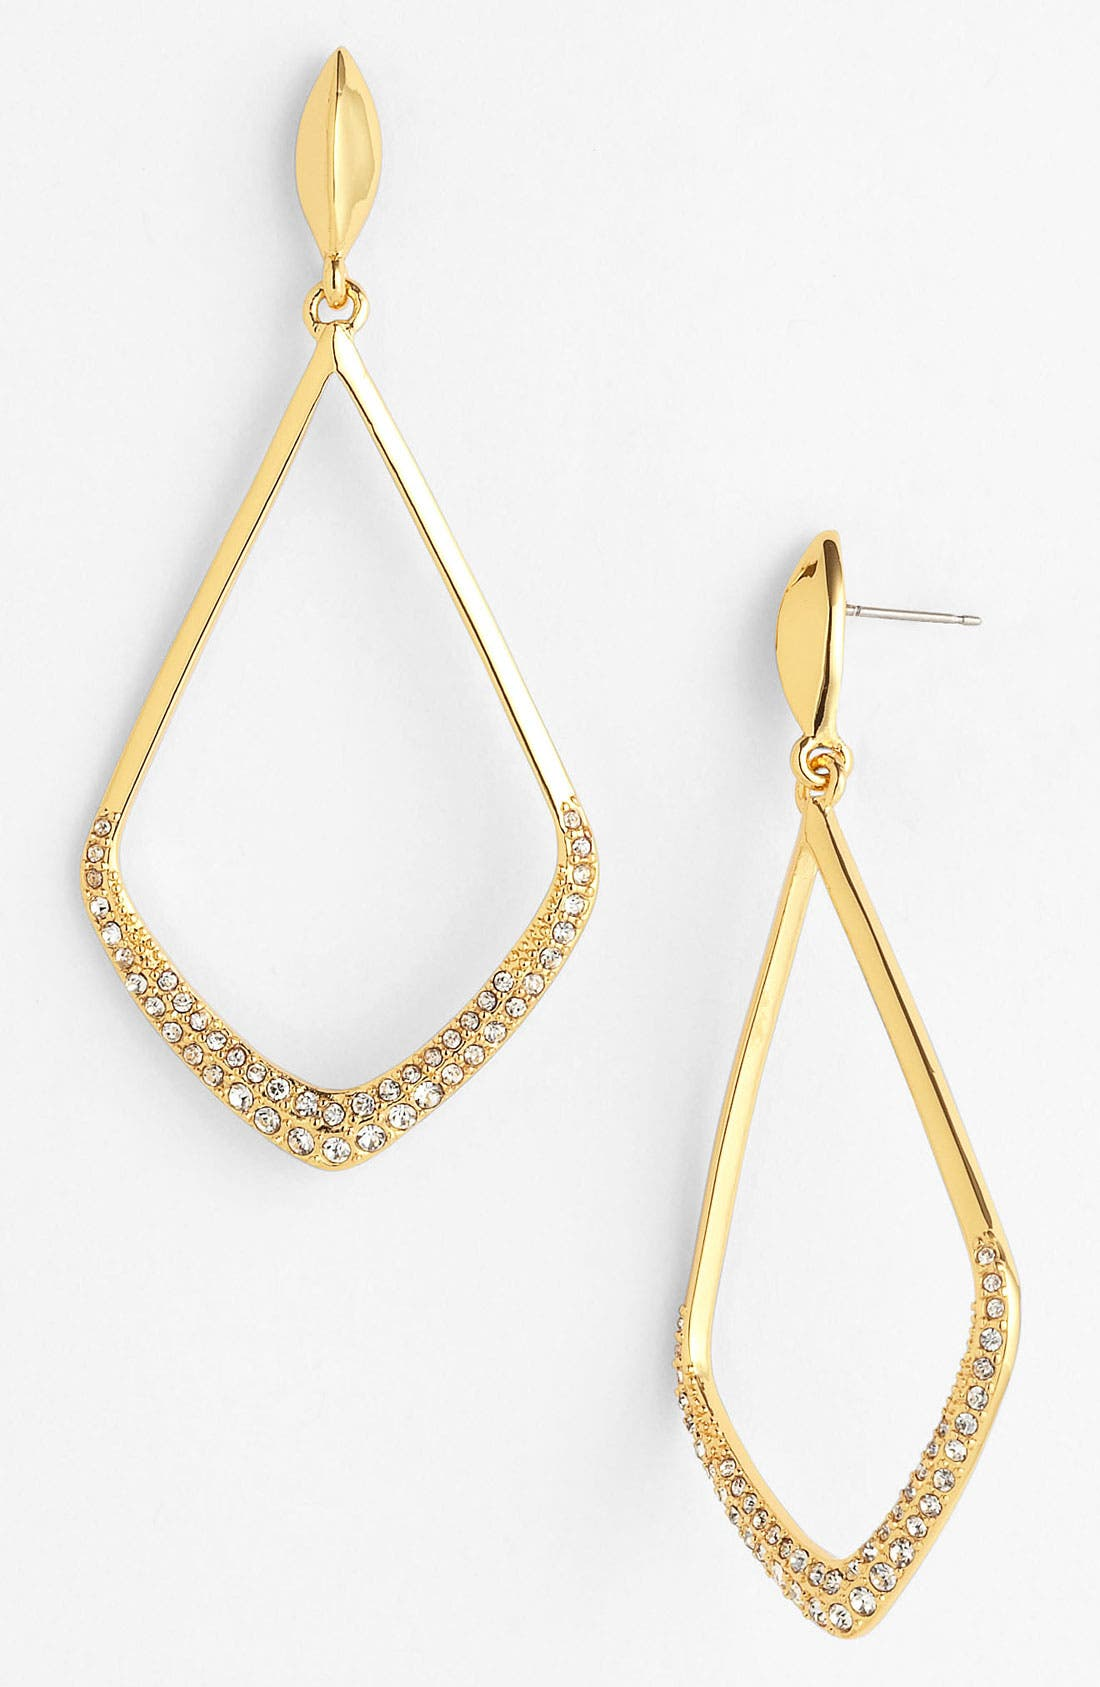 Main Image - Vince Camuto 'Speakeasy' Door Knocker Earrings